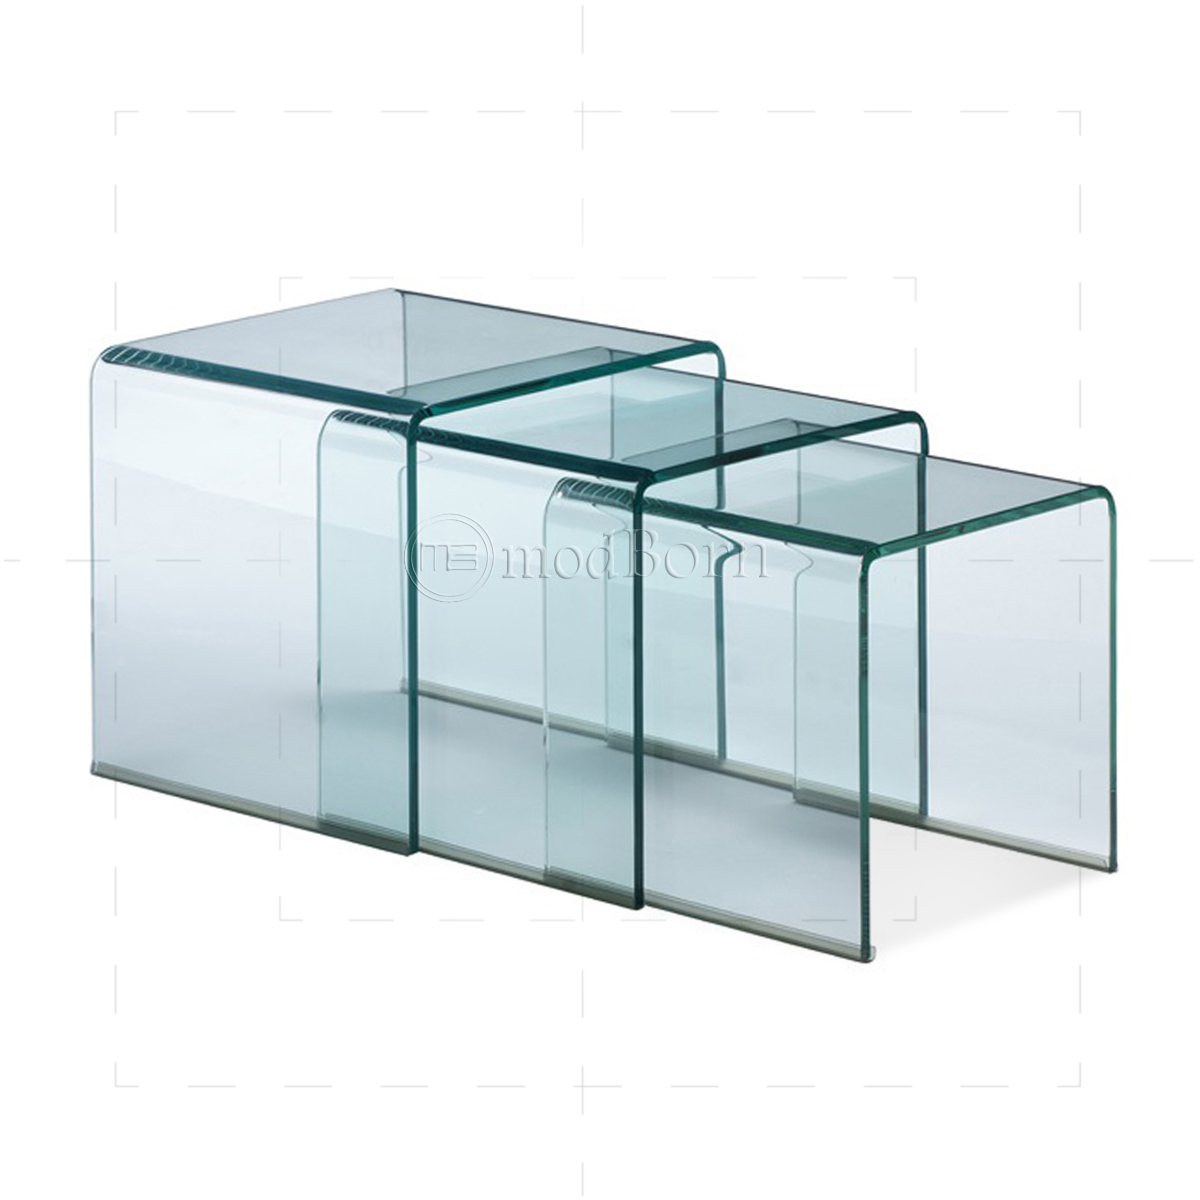 Toughened Glass Nest of 3 Coffee Side Tables Clear : nestedtablesleft 1200x1200 from www.modborn.com size 1200 x 1200 jpeg 239kB